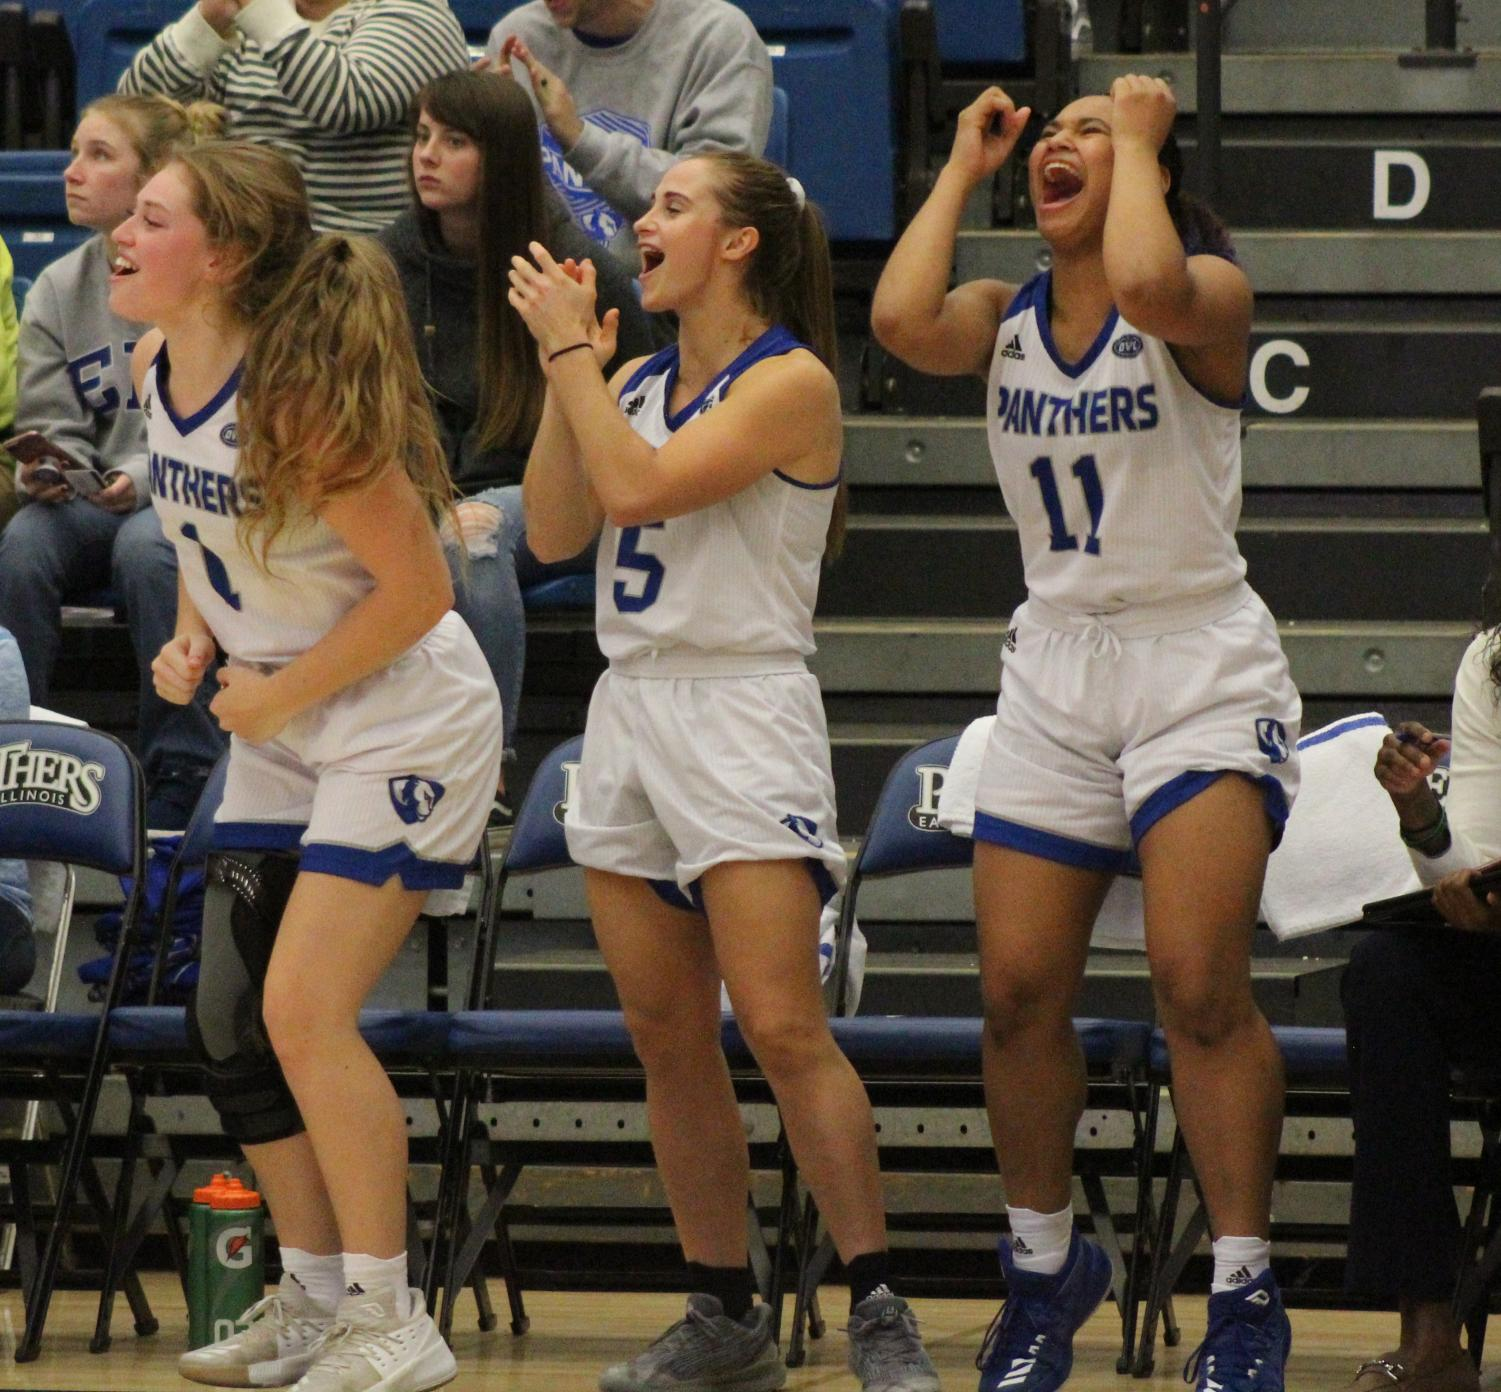 Eastern basketball players (from left) Kira Arthofer, Grace Lennox and Karle Pace celebrate the Panthers breaking the 100-point mark late in the game on Nov. 6 against Oakland City. It was the first time since 2009 the Panthers reached 100 points.